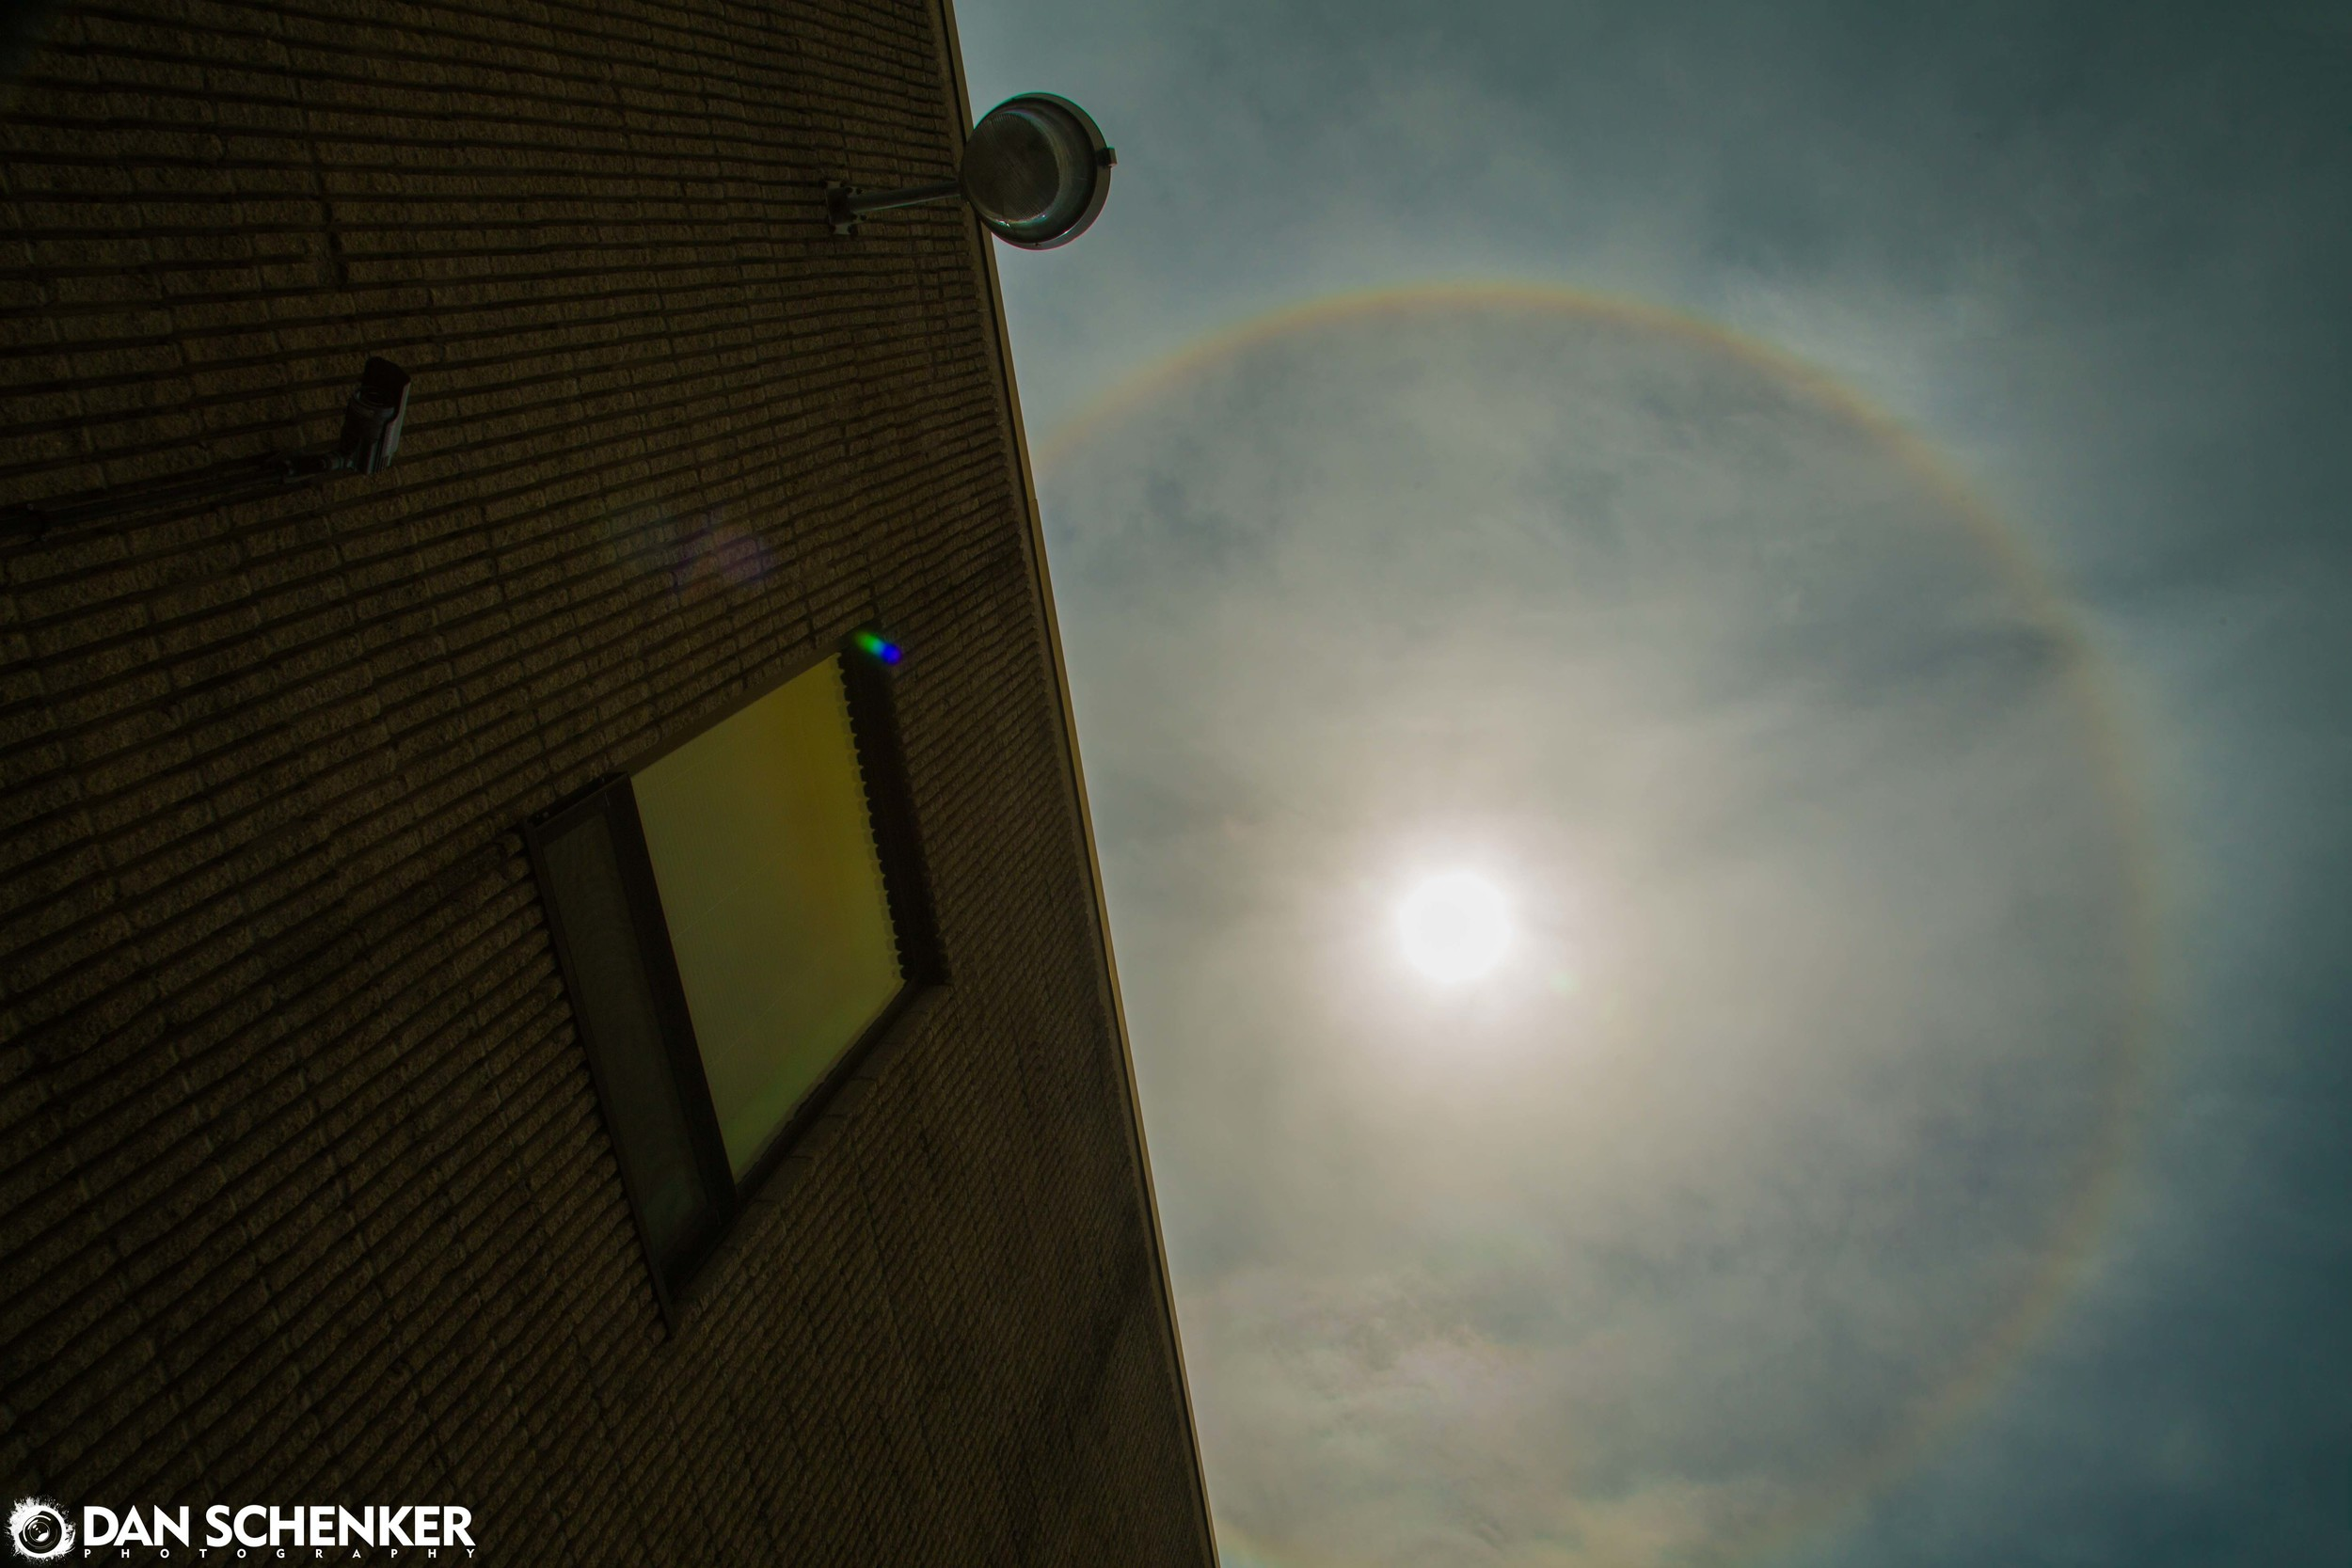 """The """"Ring Around the Sun,"""" as seen from Unique Photo in Fairfield, New Jersey on May 14th, 2013."""